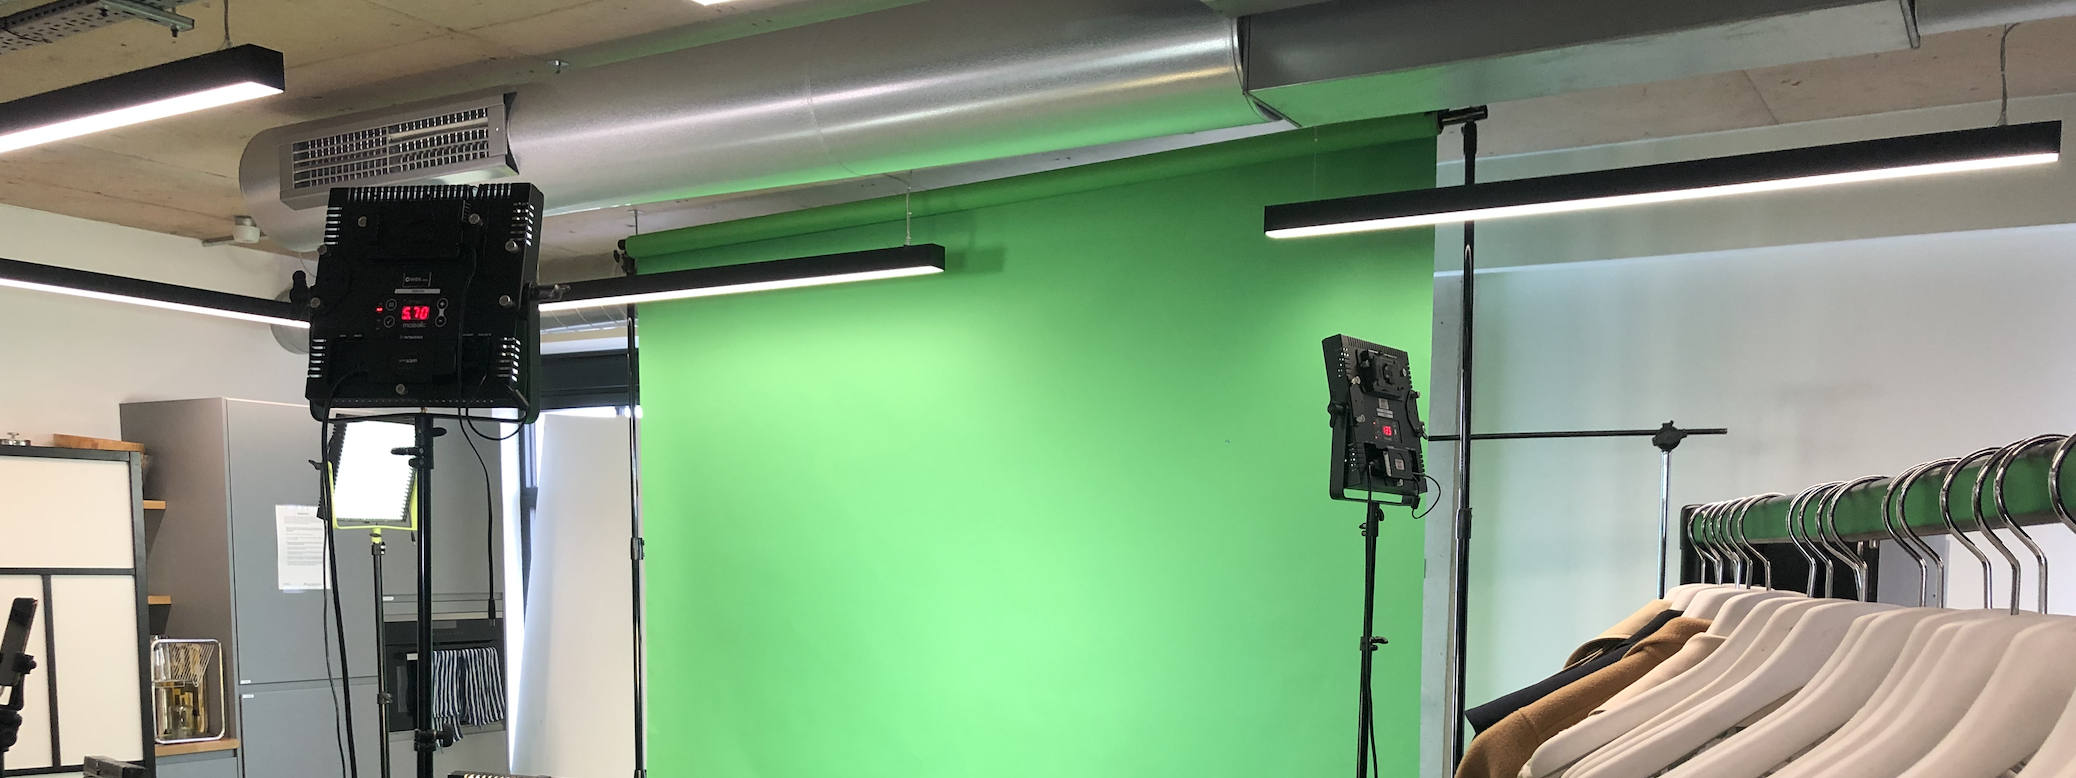 green screen capture setup, Fashion Innovation Agency